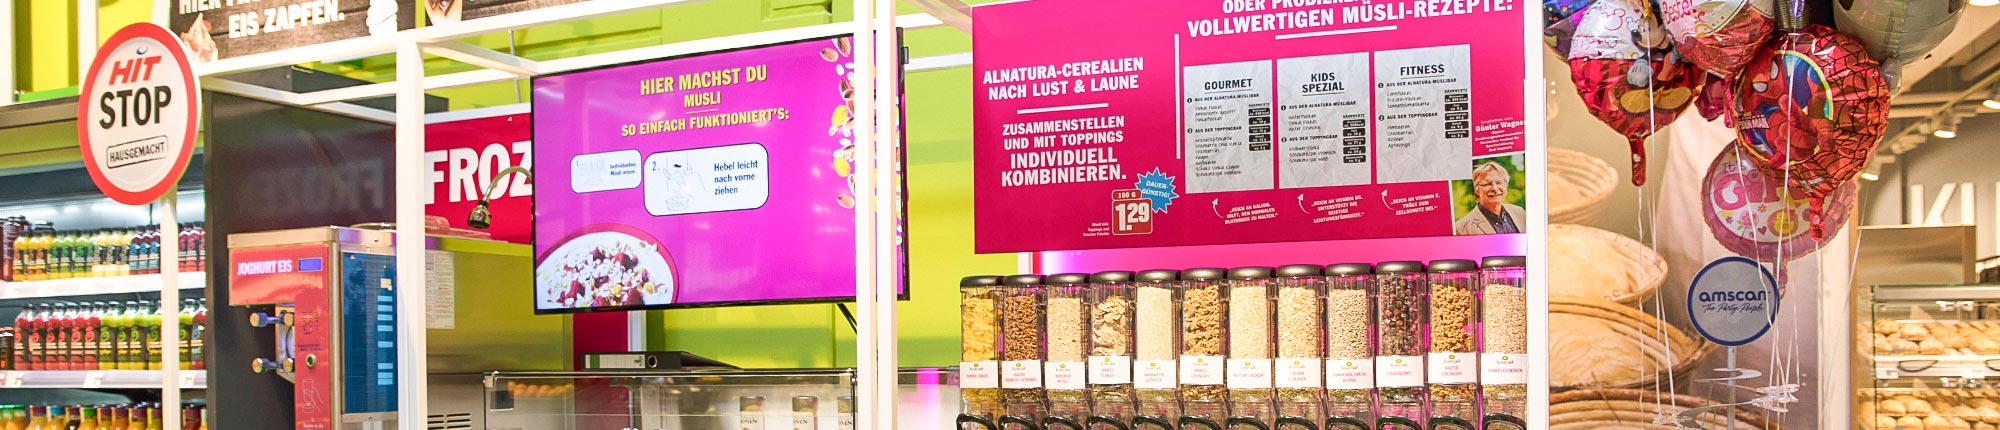 software digital signage hit dohle Frozen Joghurt panorama